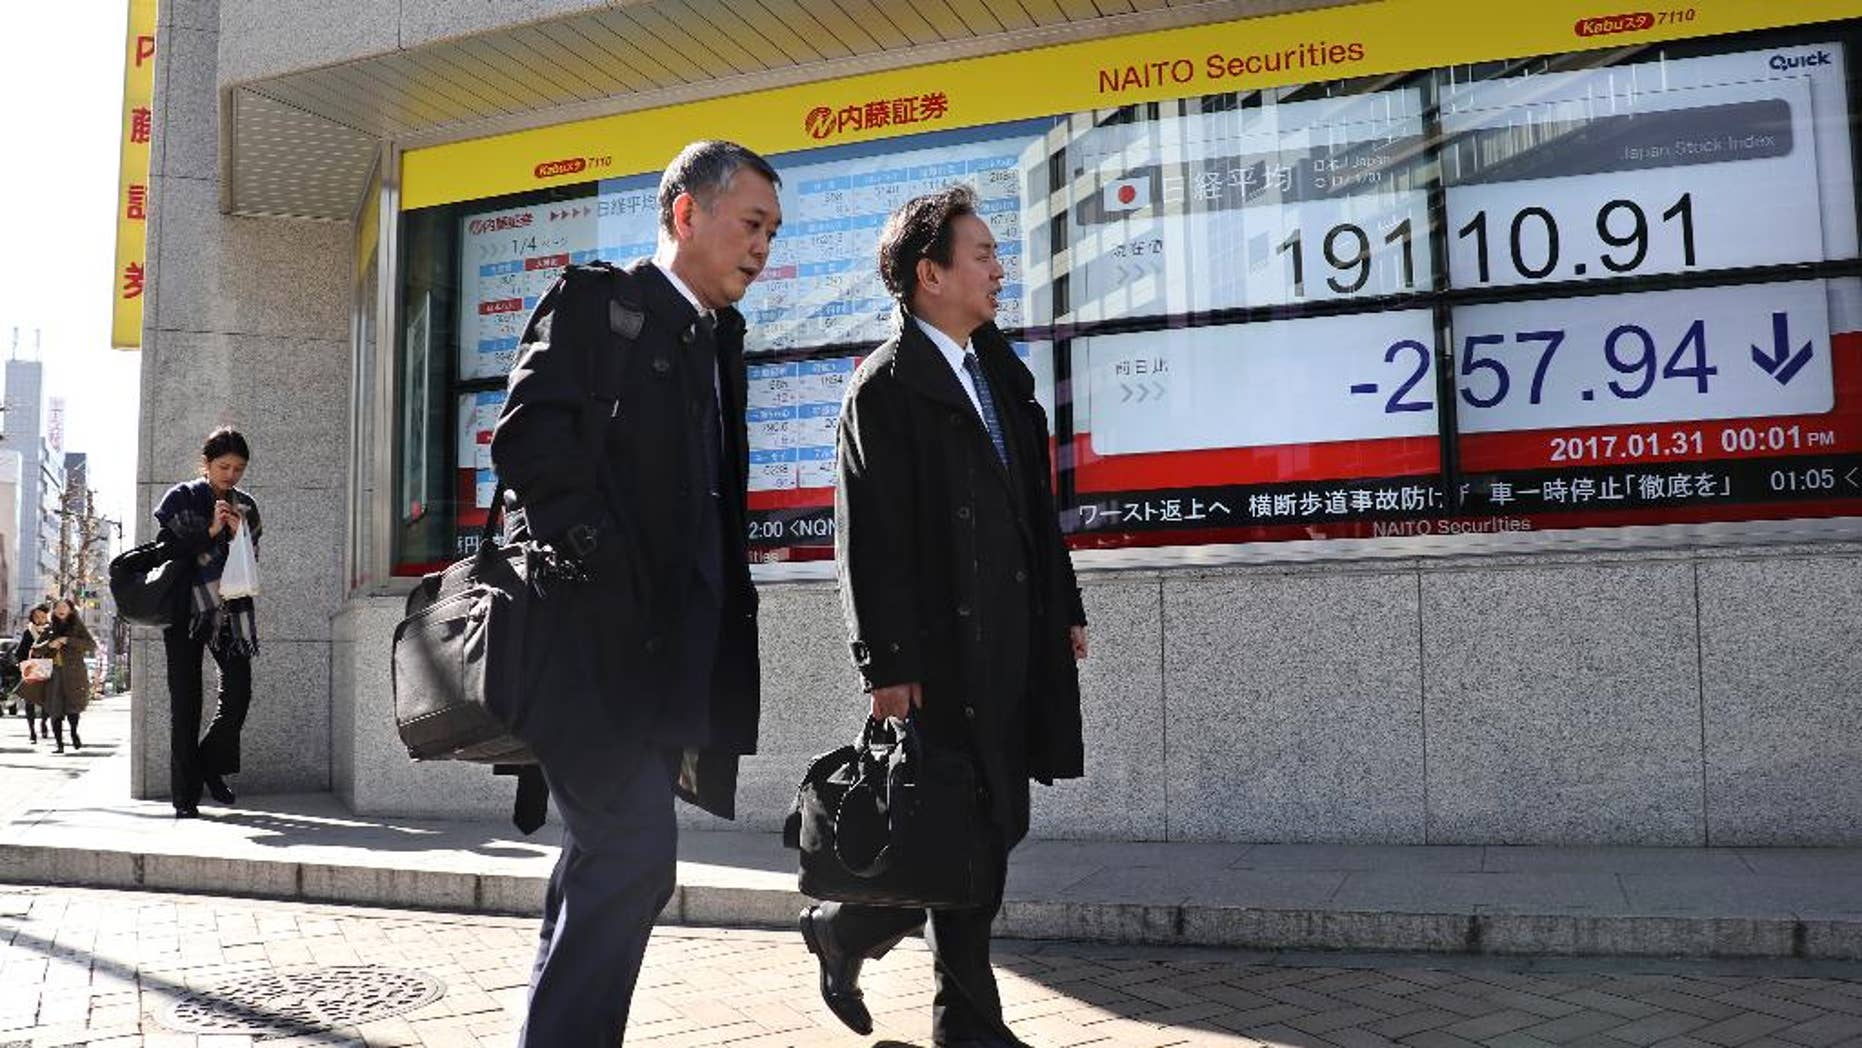 Men walk past an electronic stock indicator of a securities firm in Tokyo, Tuesday, Jan. 31, 2017. Asian shares slipped Tuesday, tracking a decline on Wall Street set off by jitters over President Donald Trump's travel ban. (AP Photo/Shizuo Kambayashi)